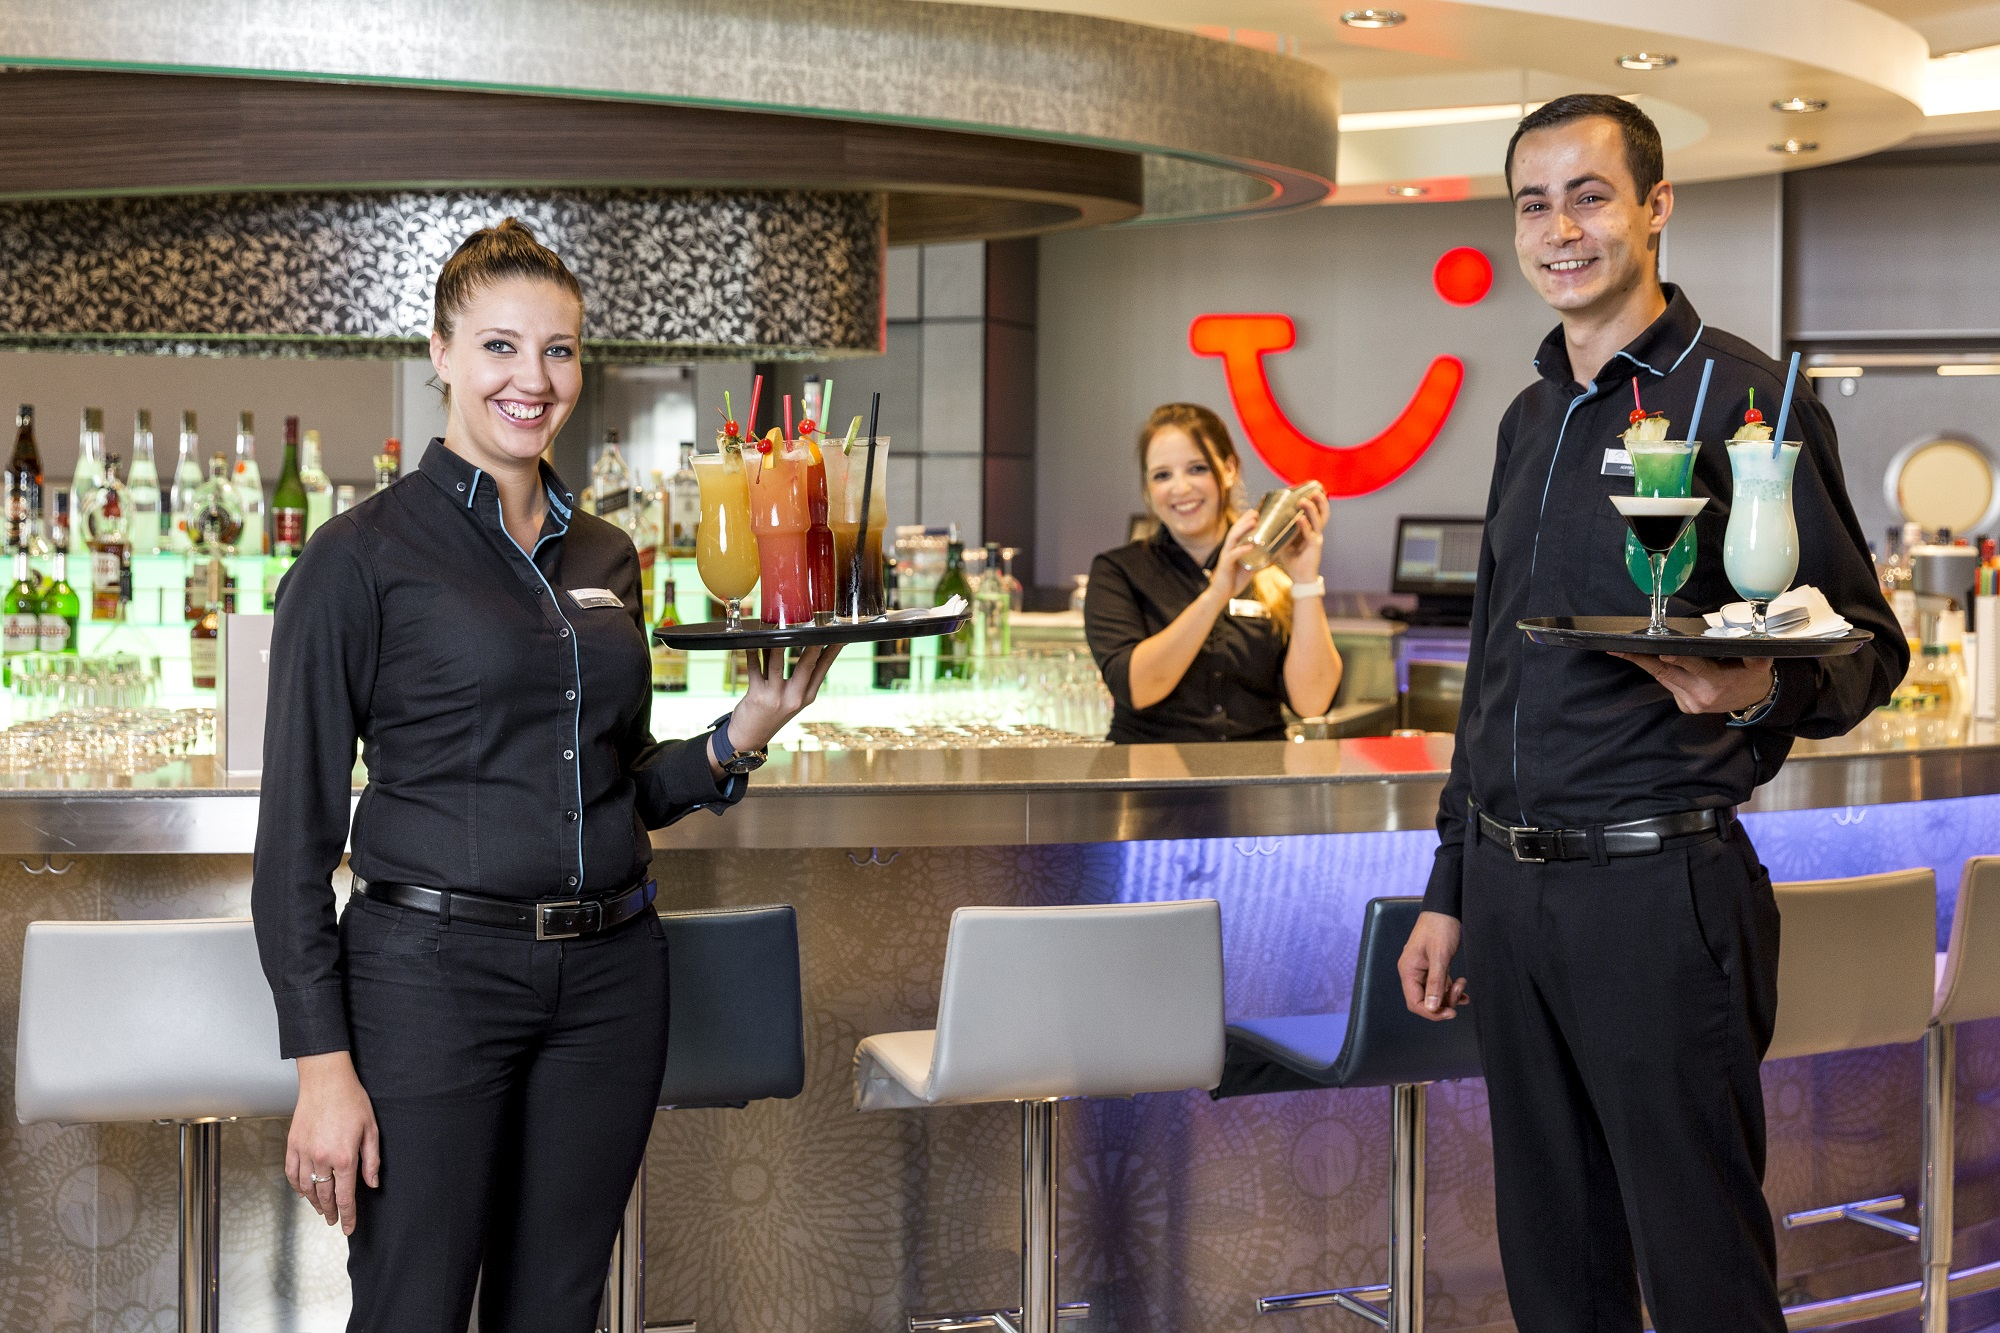 TUIC Bar Steward Barkeeper